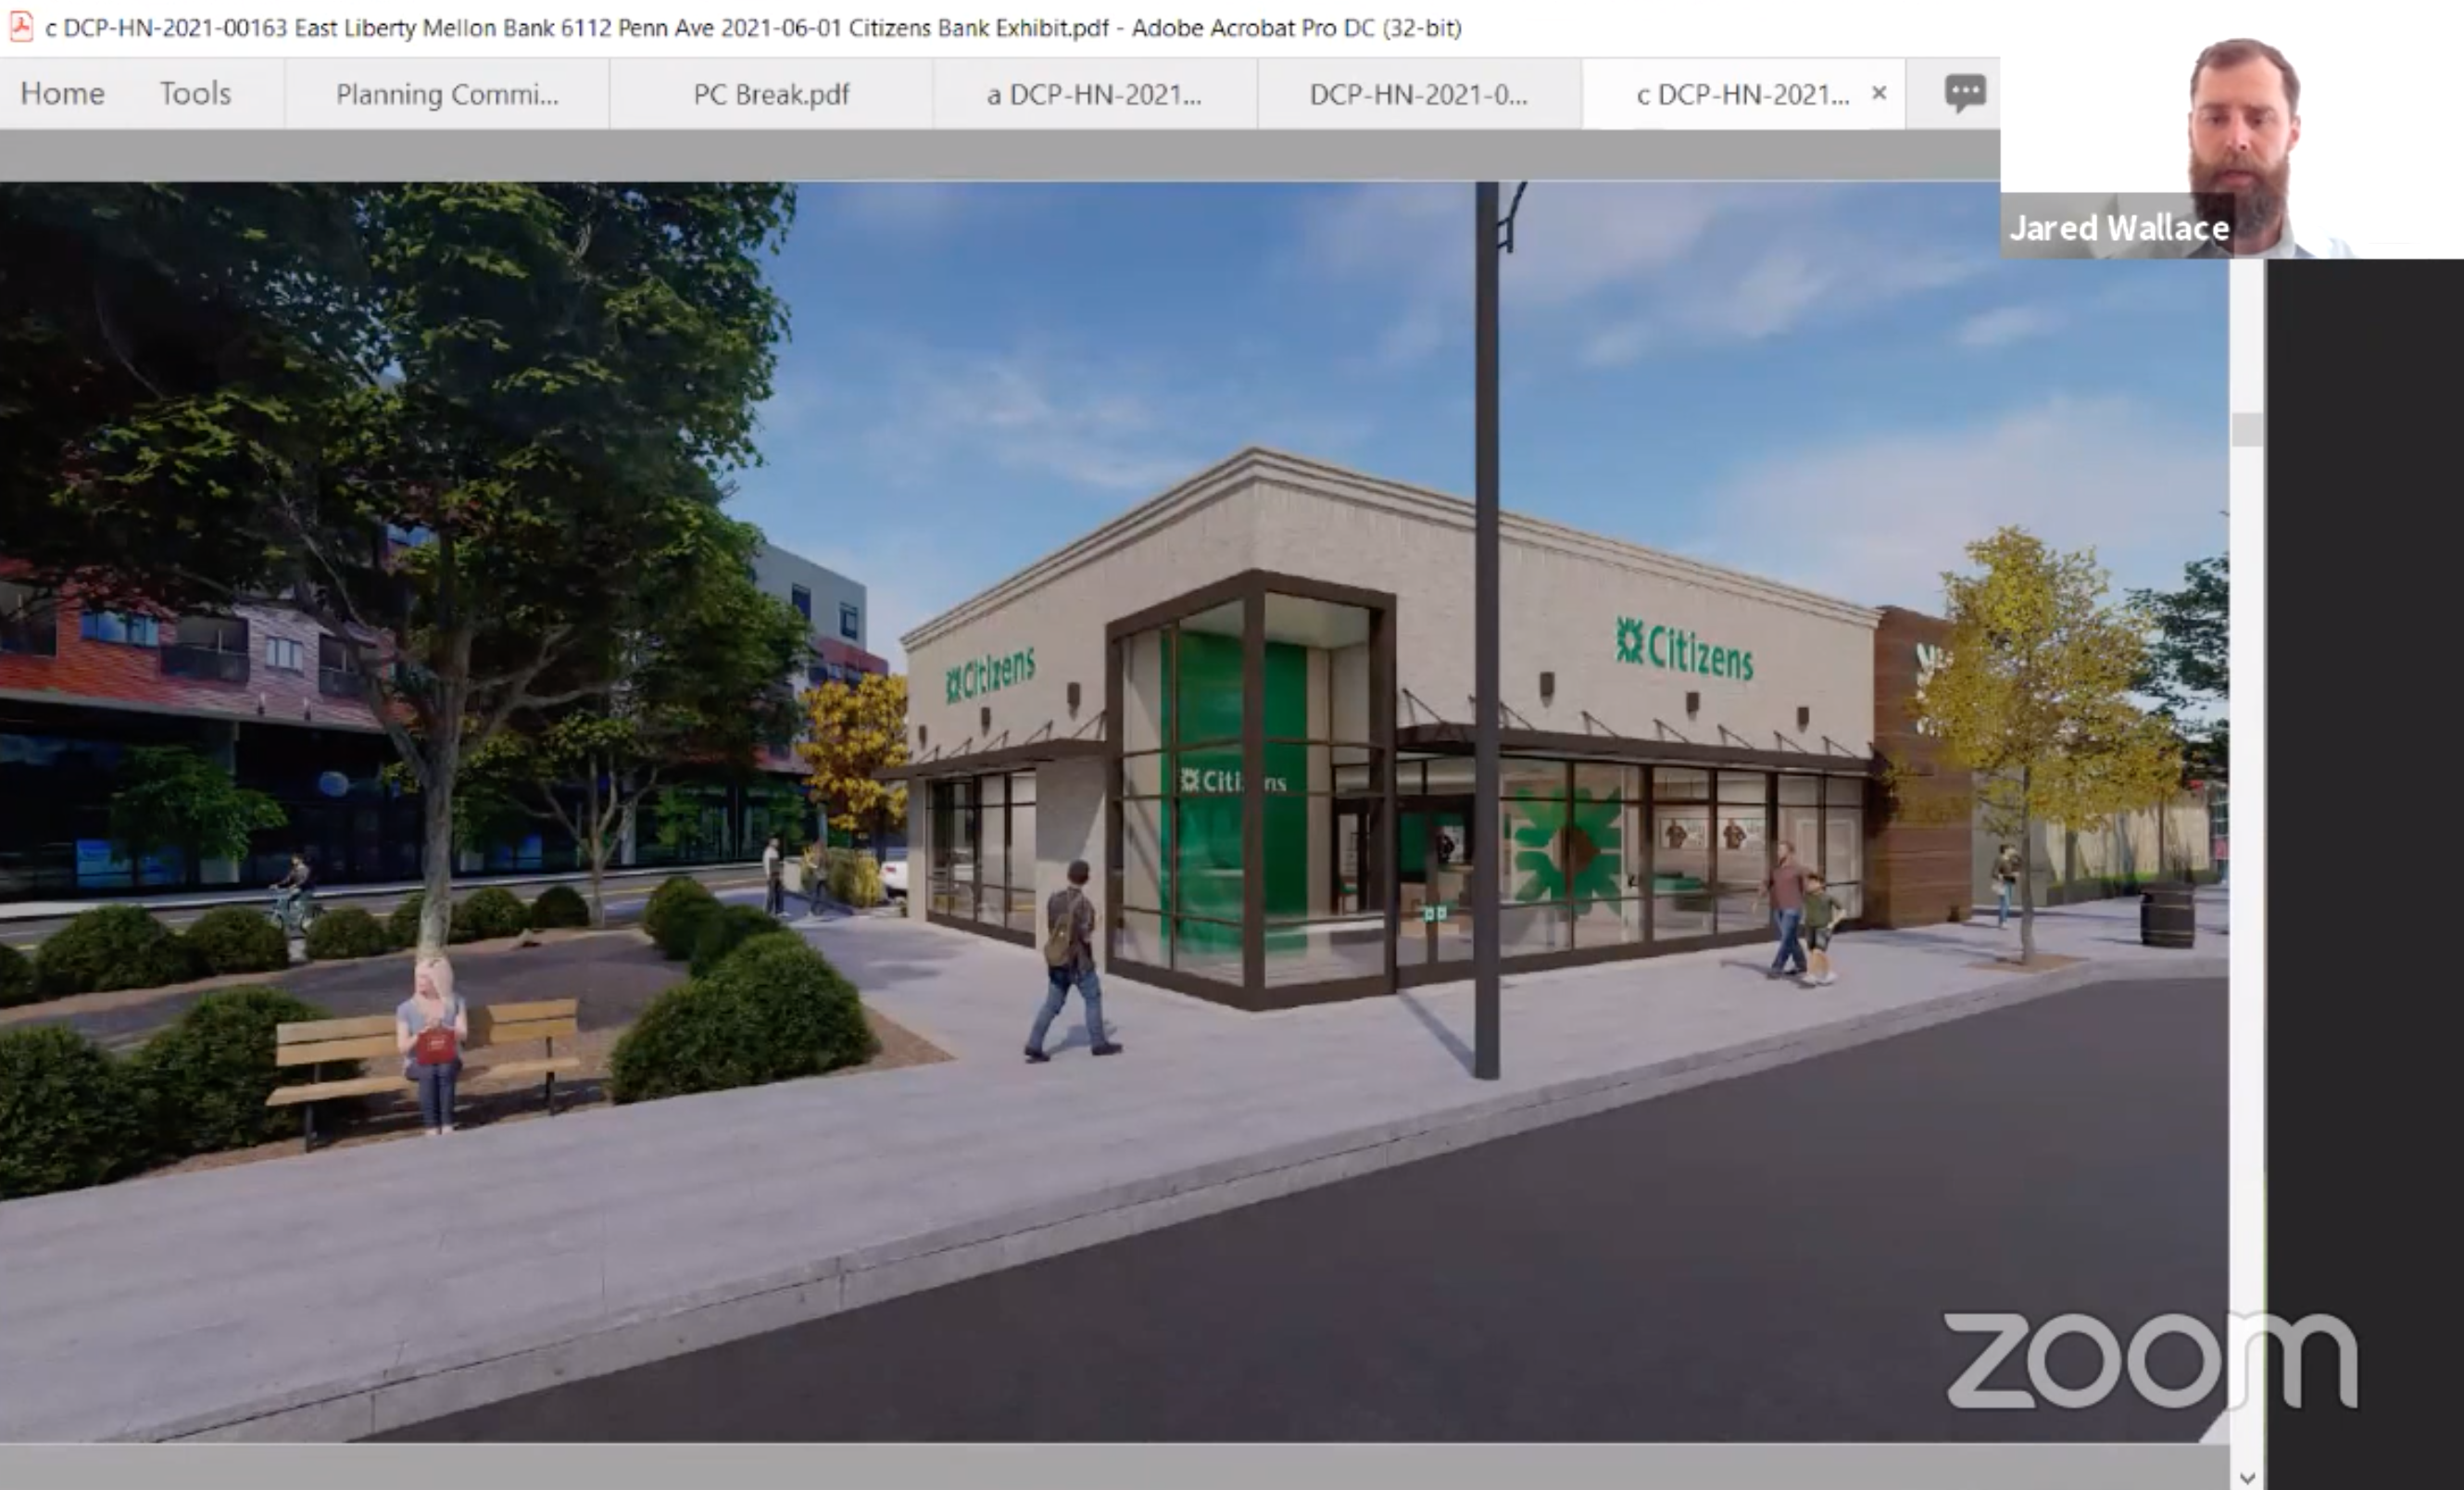 Jared Wallace, Citizens Bank's head of property, strategy and execution, shows the City Planning Commission a rendering of a potential new branch to be constructed in East Liberty, in a June 1, 2021 meeting conducted via Zoom. (Screenshot)